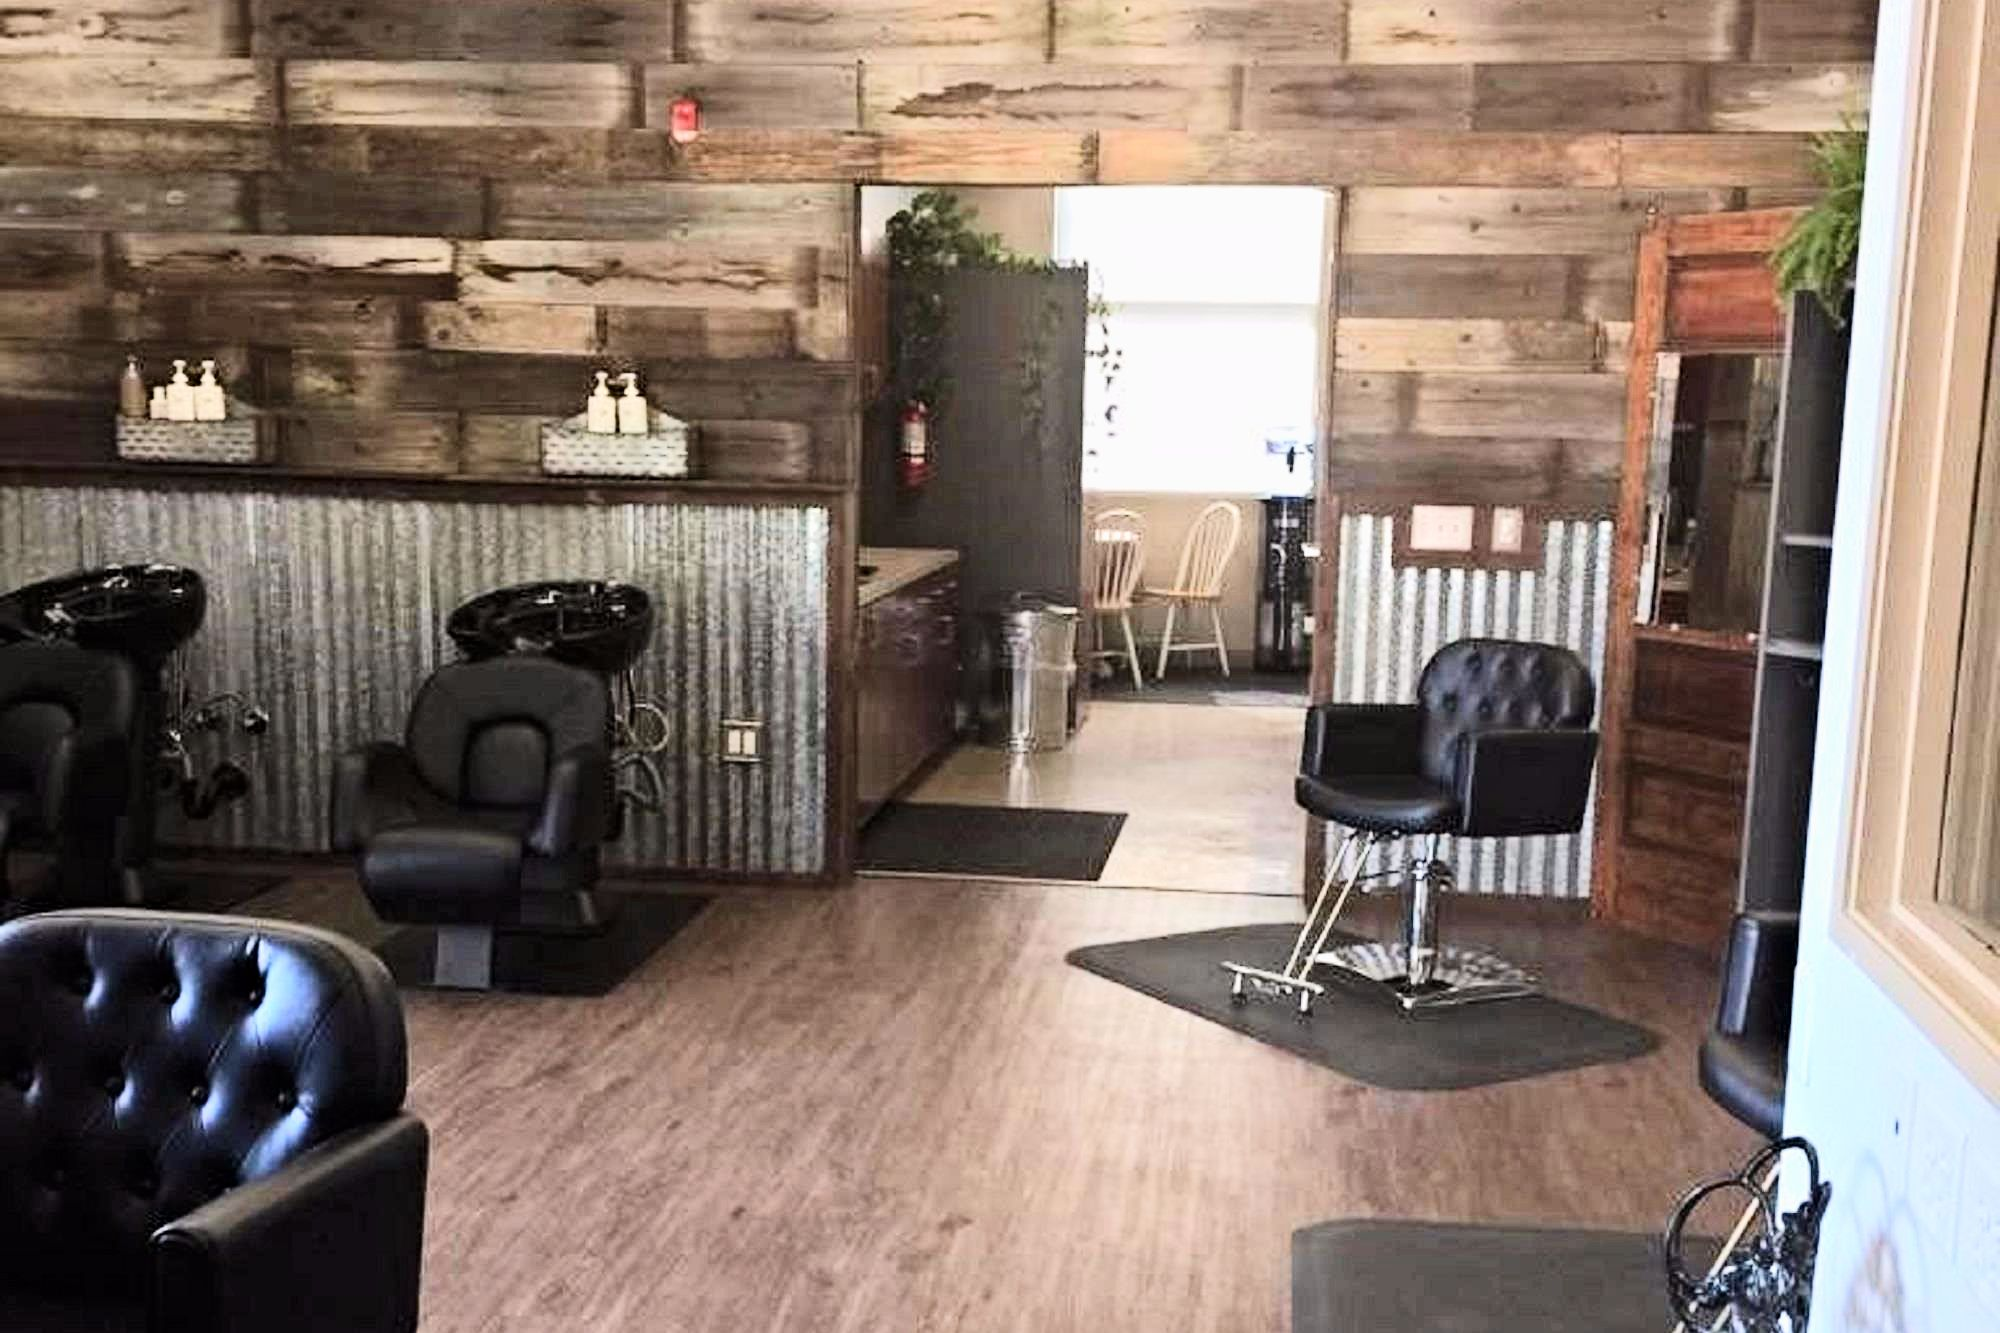 Rustic Rae S Hair Salon In Turlock Ca Vagaro Hair Salon Decor Salon Decor Studio Rustic Salon